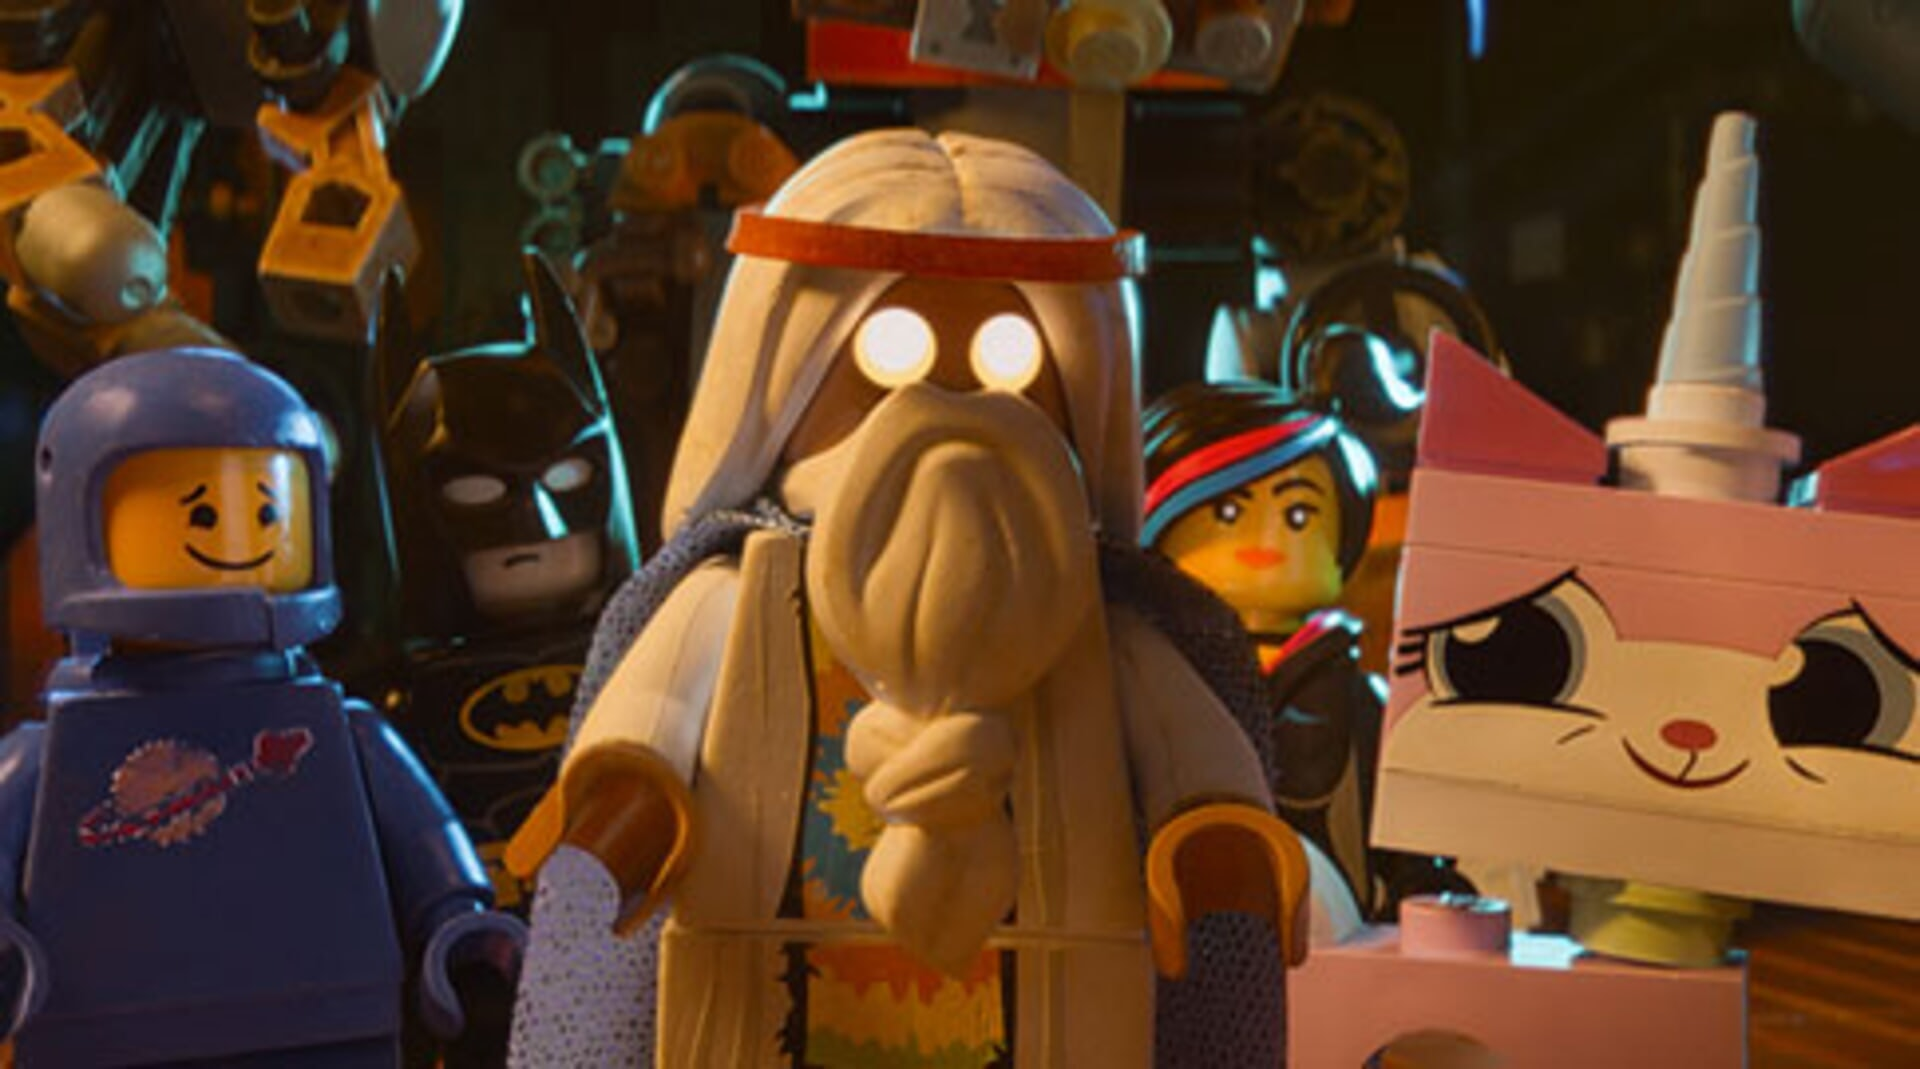 The Lego Movie - Image 16